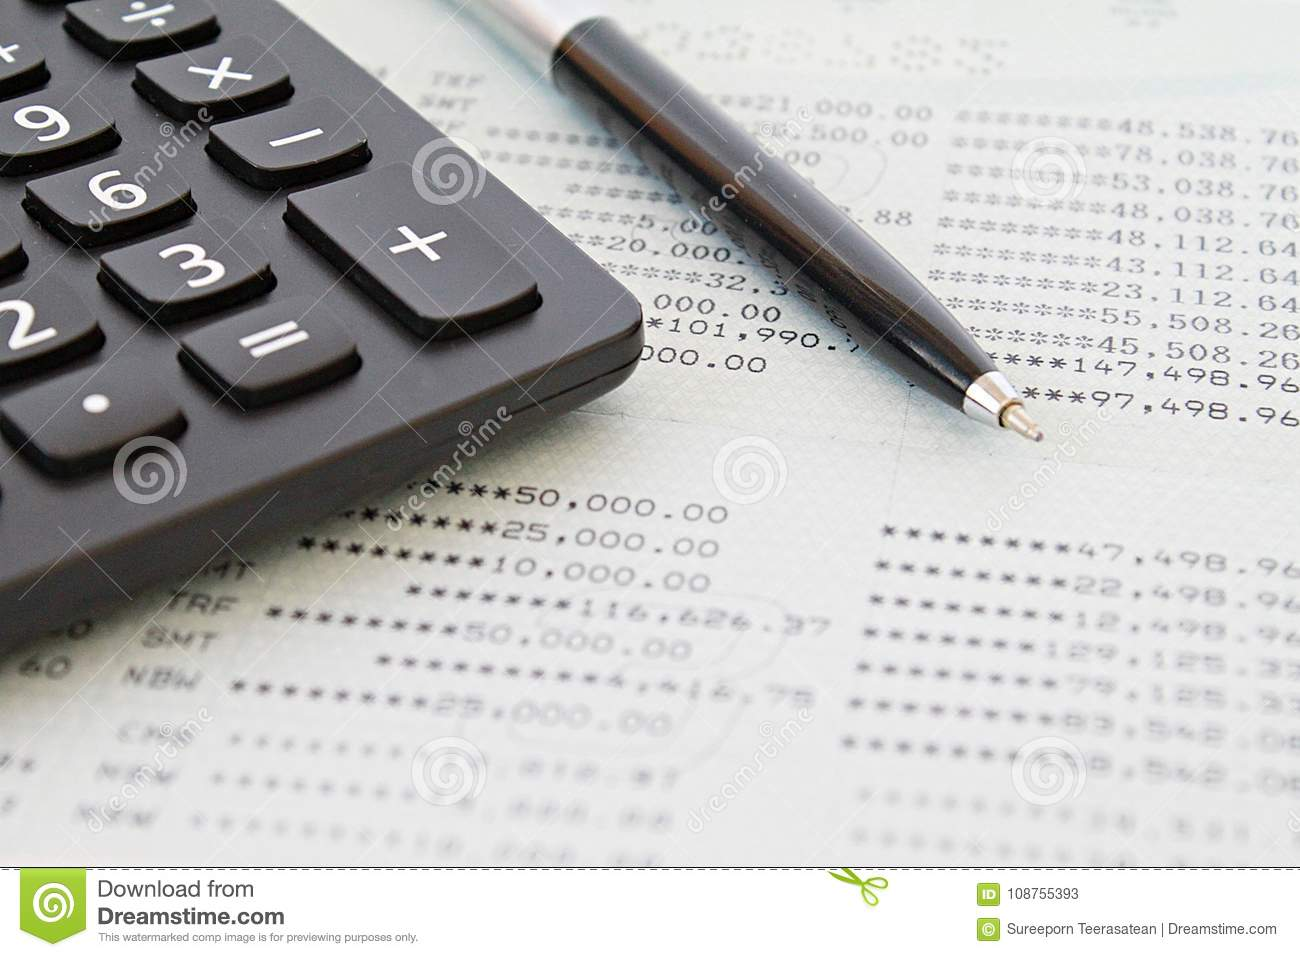 savings account passbook or financial statement and calculator on